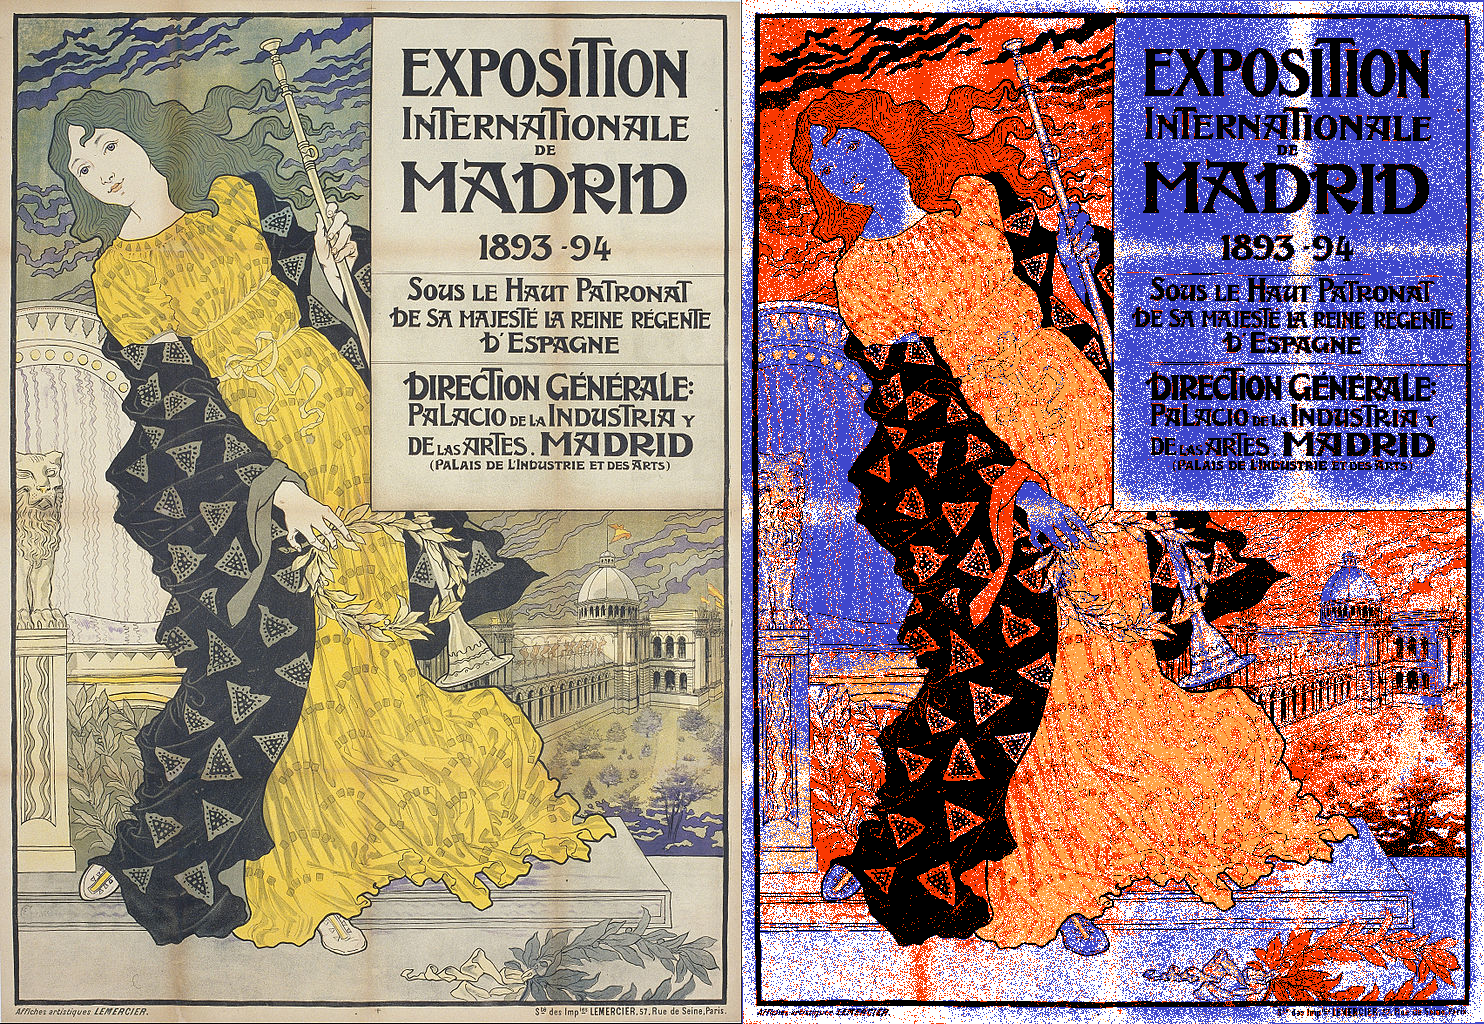 Exposition de Internationale, Madrid